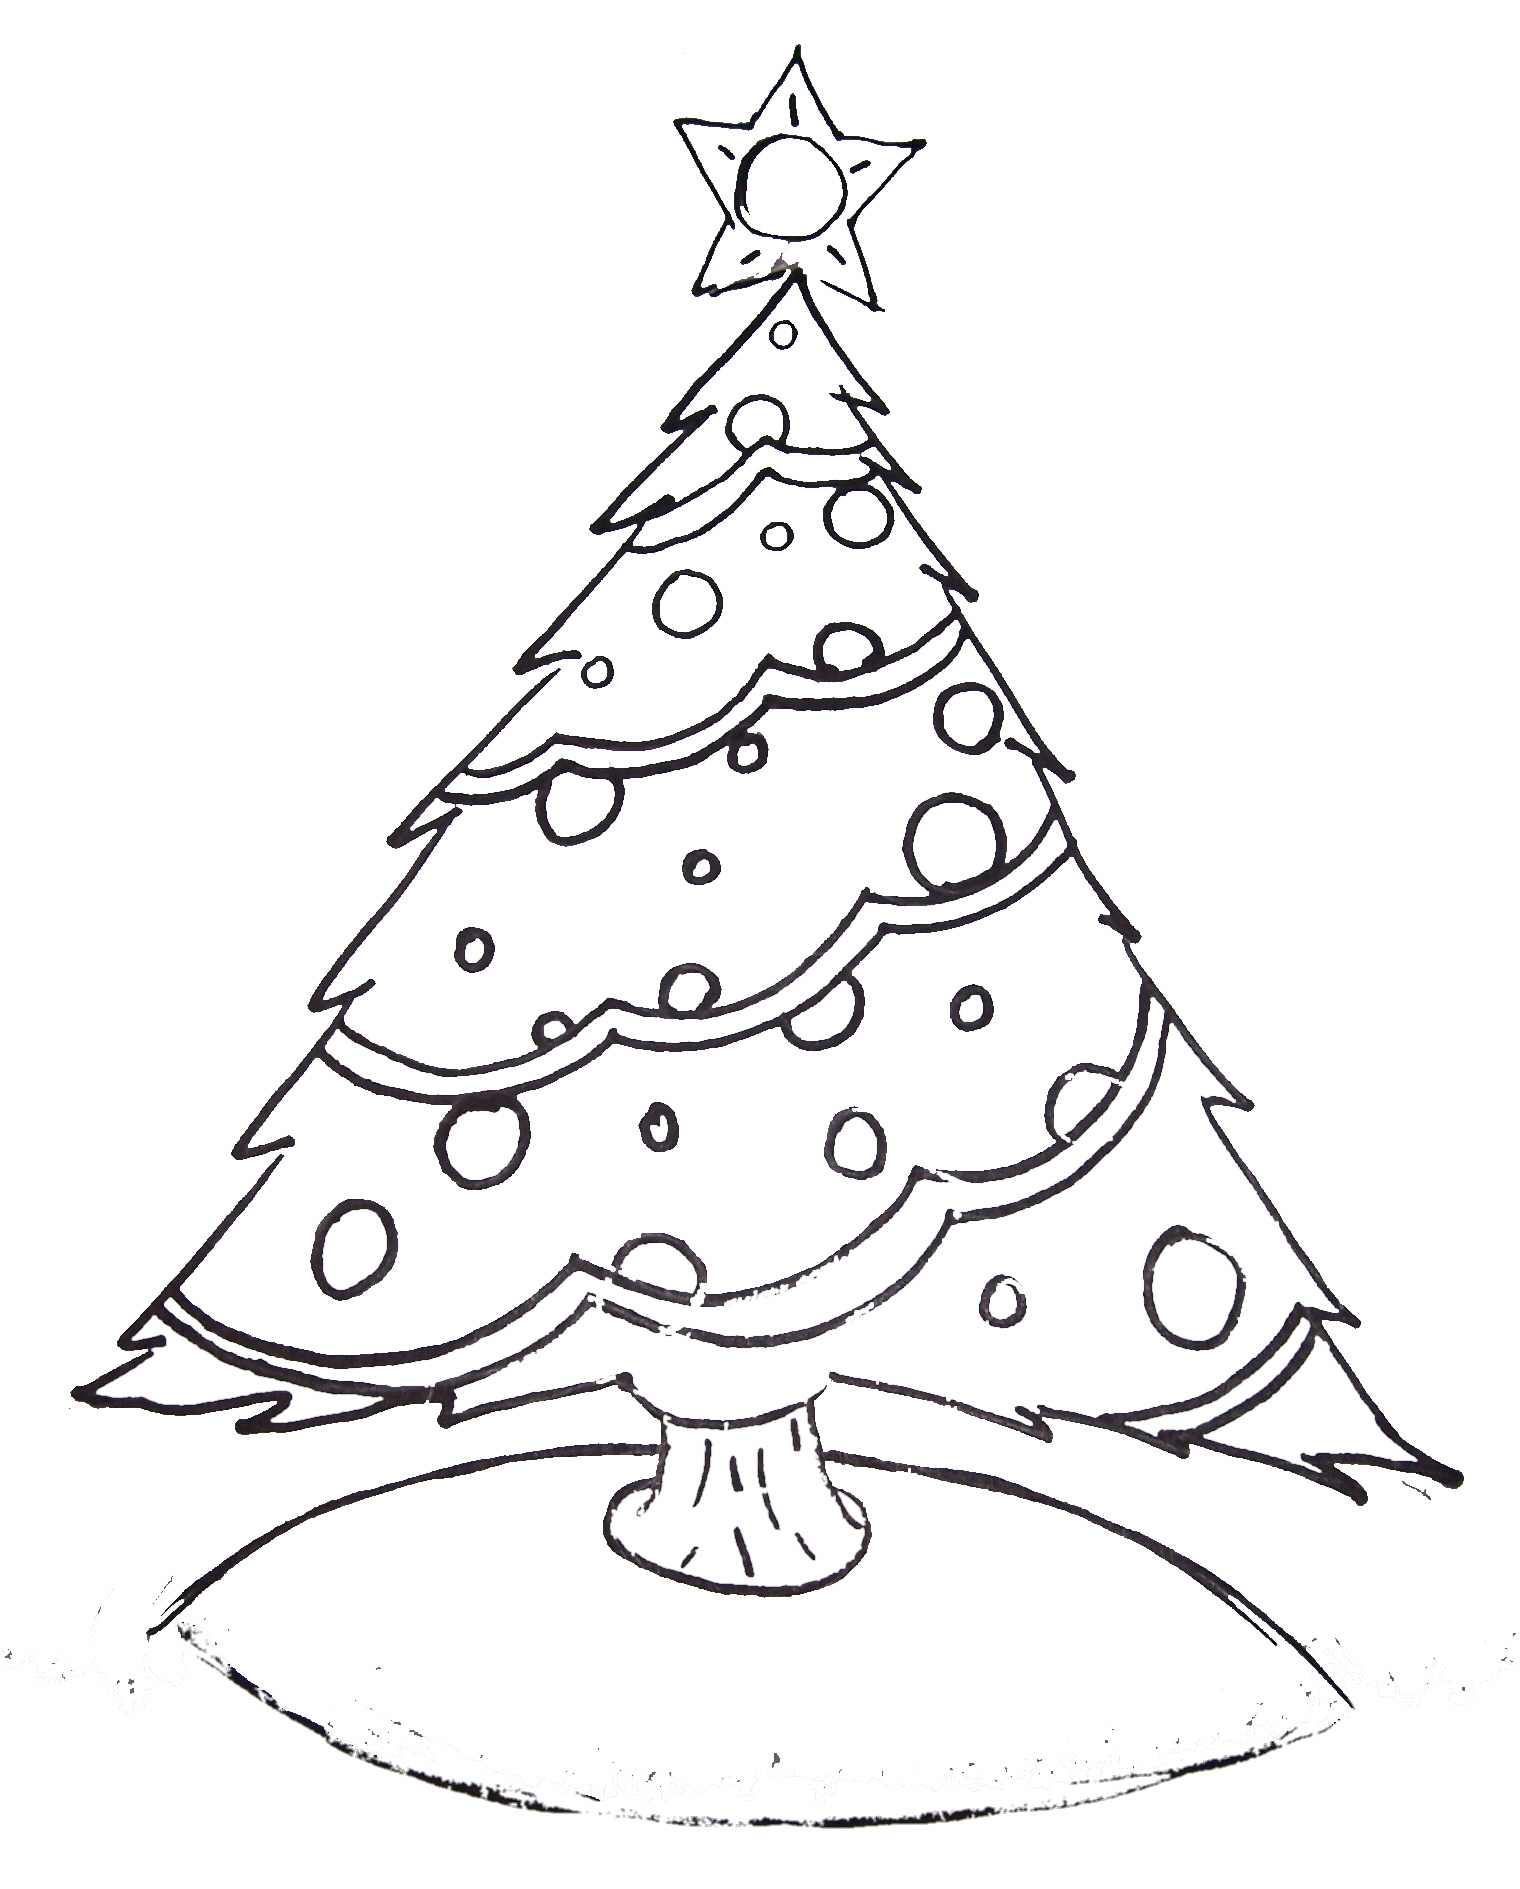 Christmas Drawing Tree at GetDrawings.com | Free for personal use ...